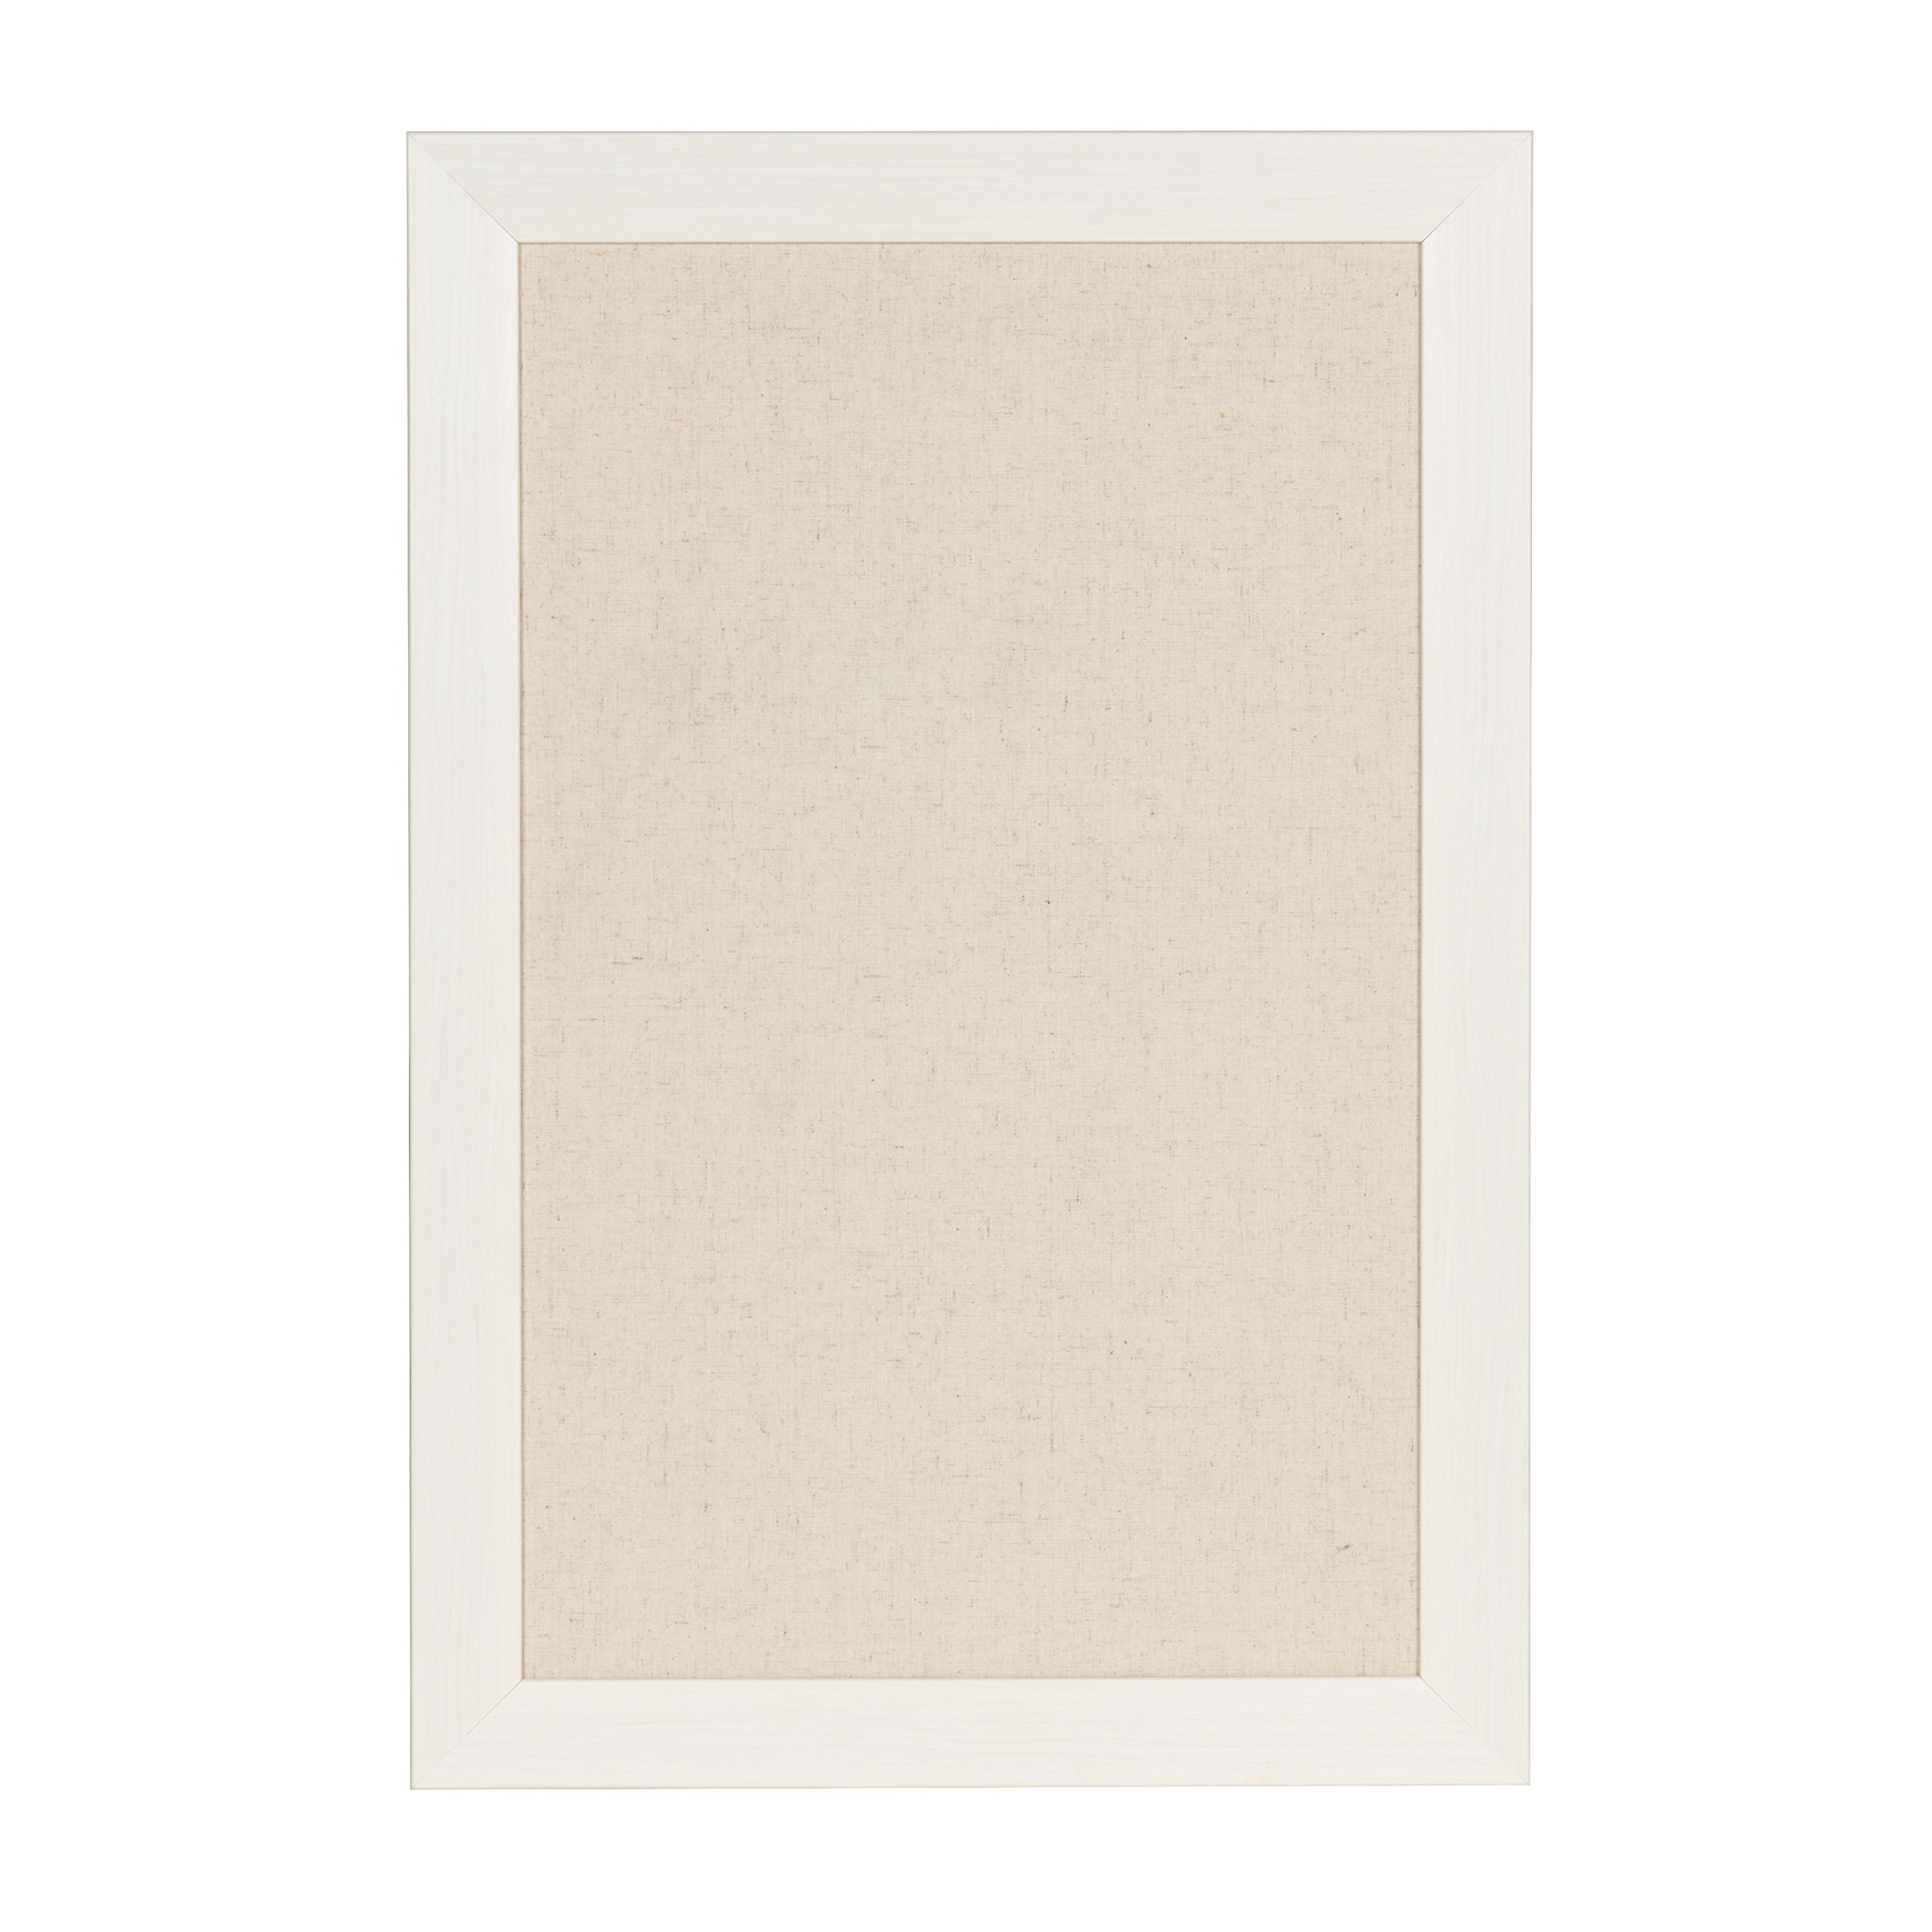 DesignOvation Beatrice Framed Linen Fabric Pinboard, 18x27, White